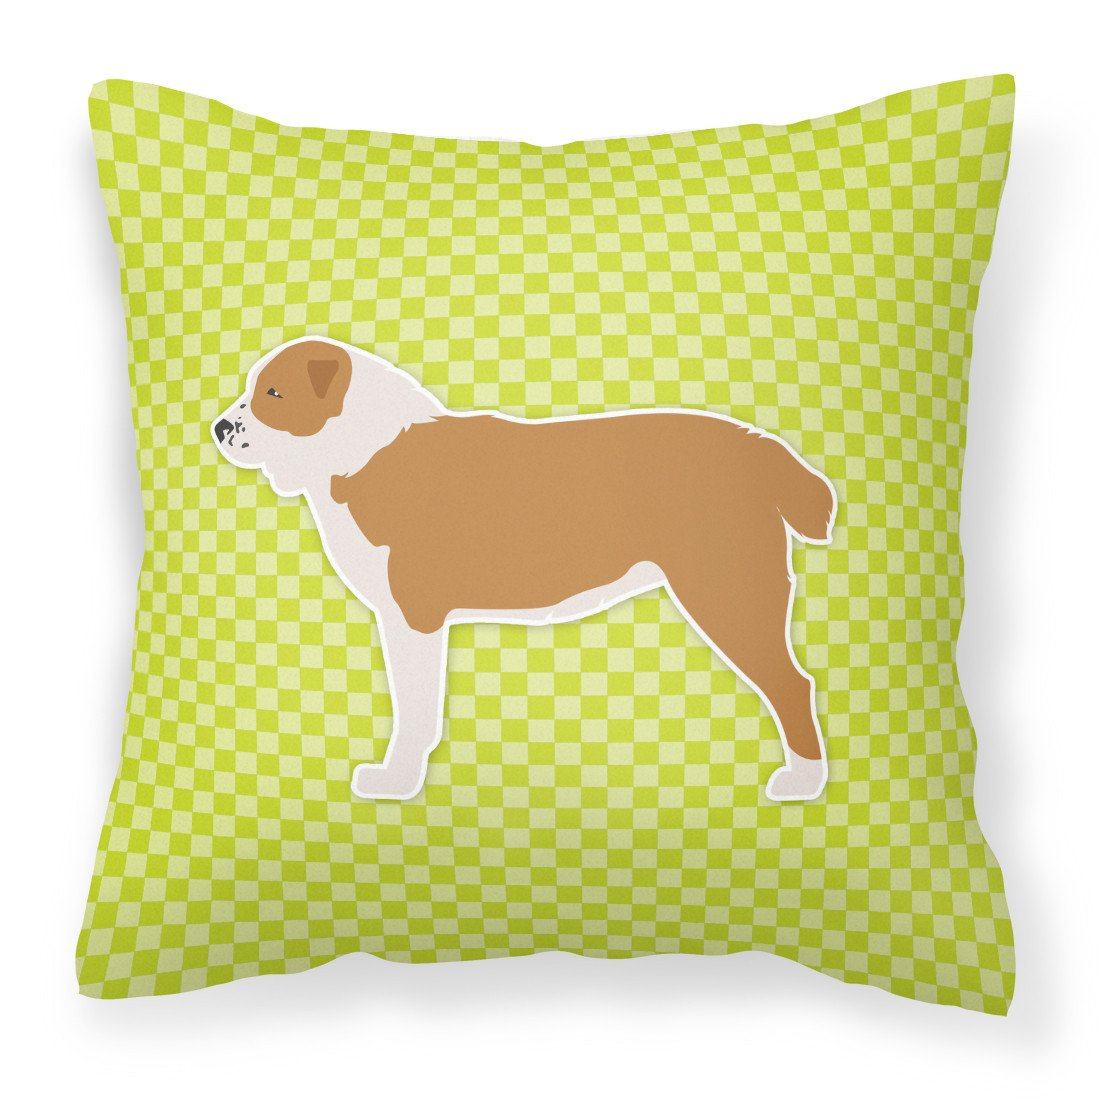 Central Asian Shepherd Dog Checkerboard Green Fabric Decorative Pillow BB3828PW1818 by Caroline's Treasures